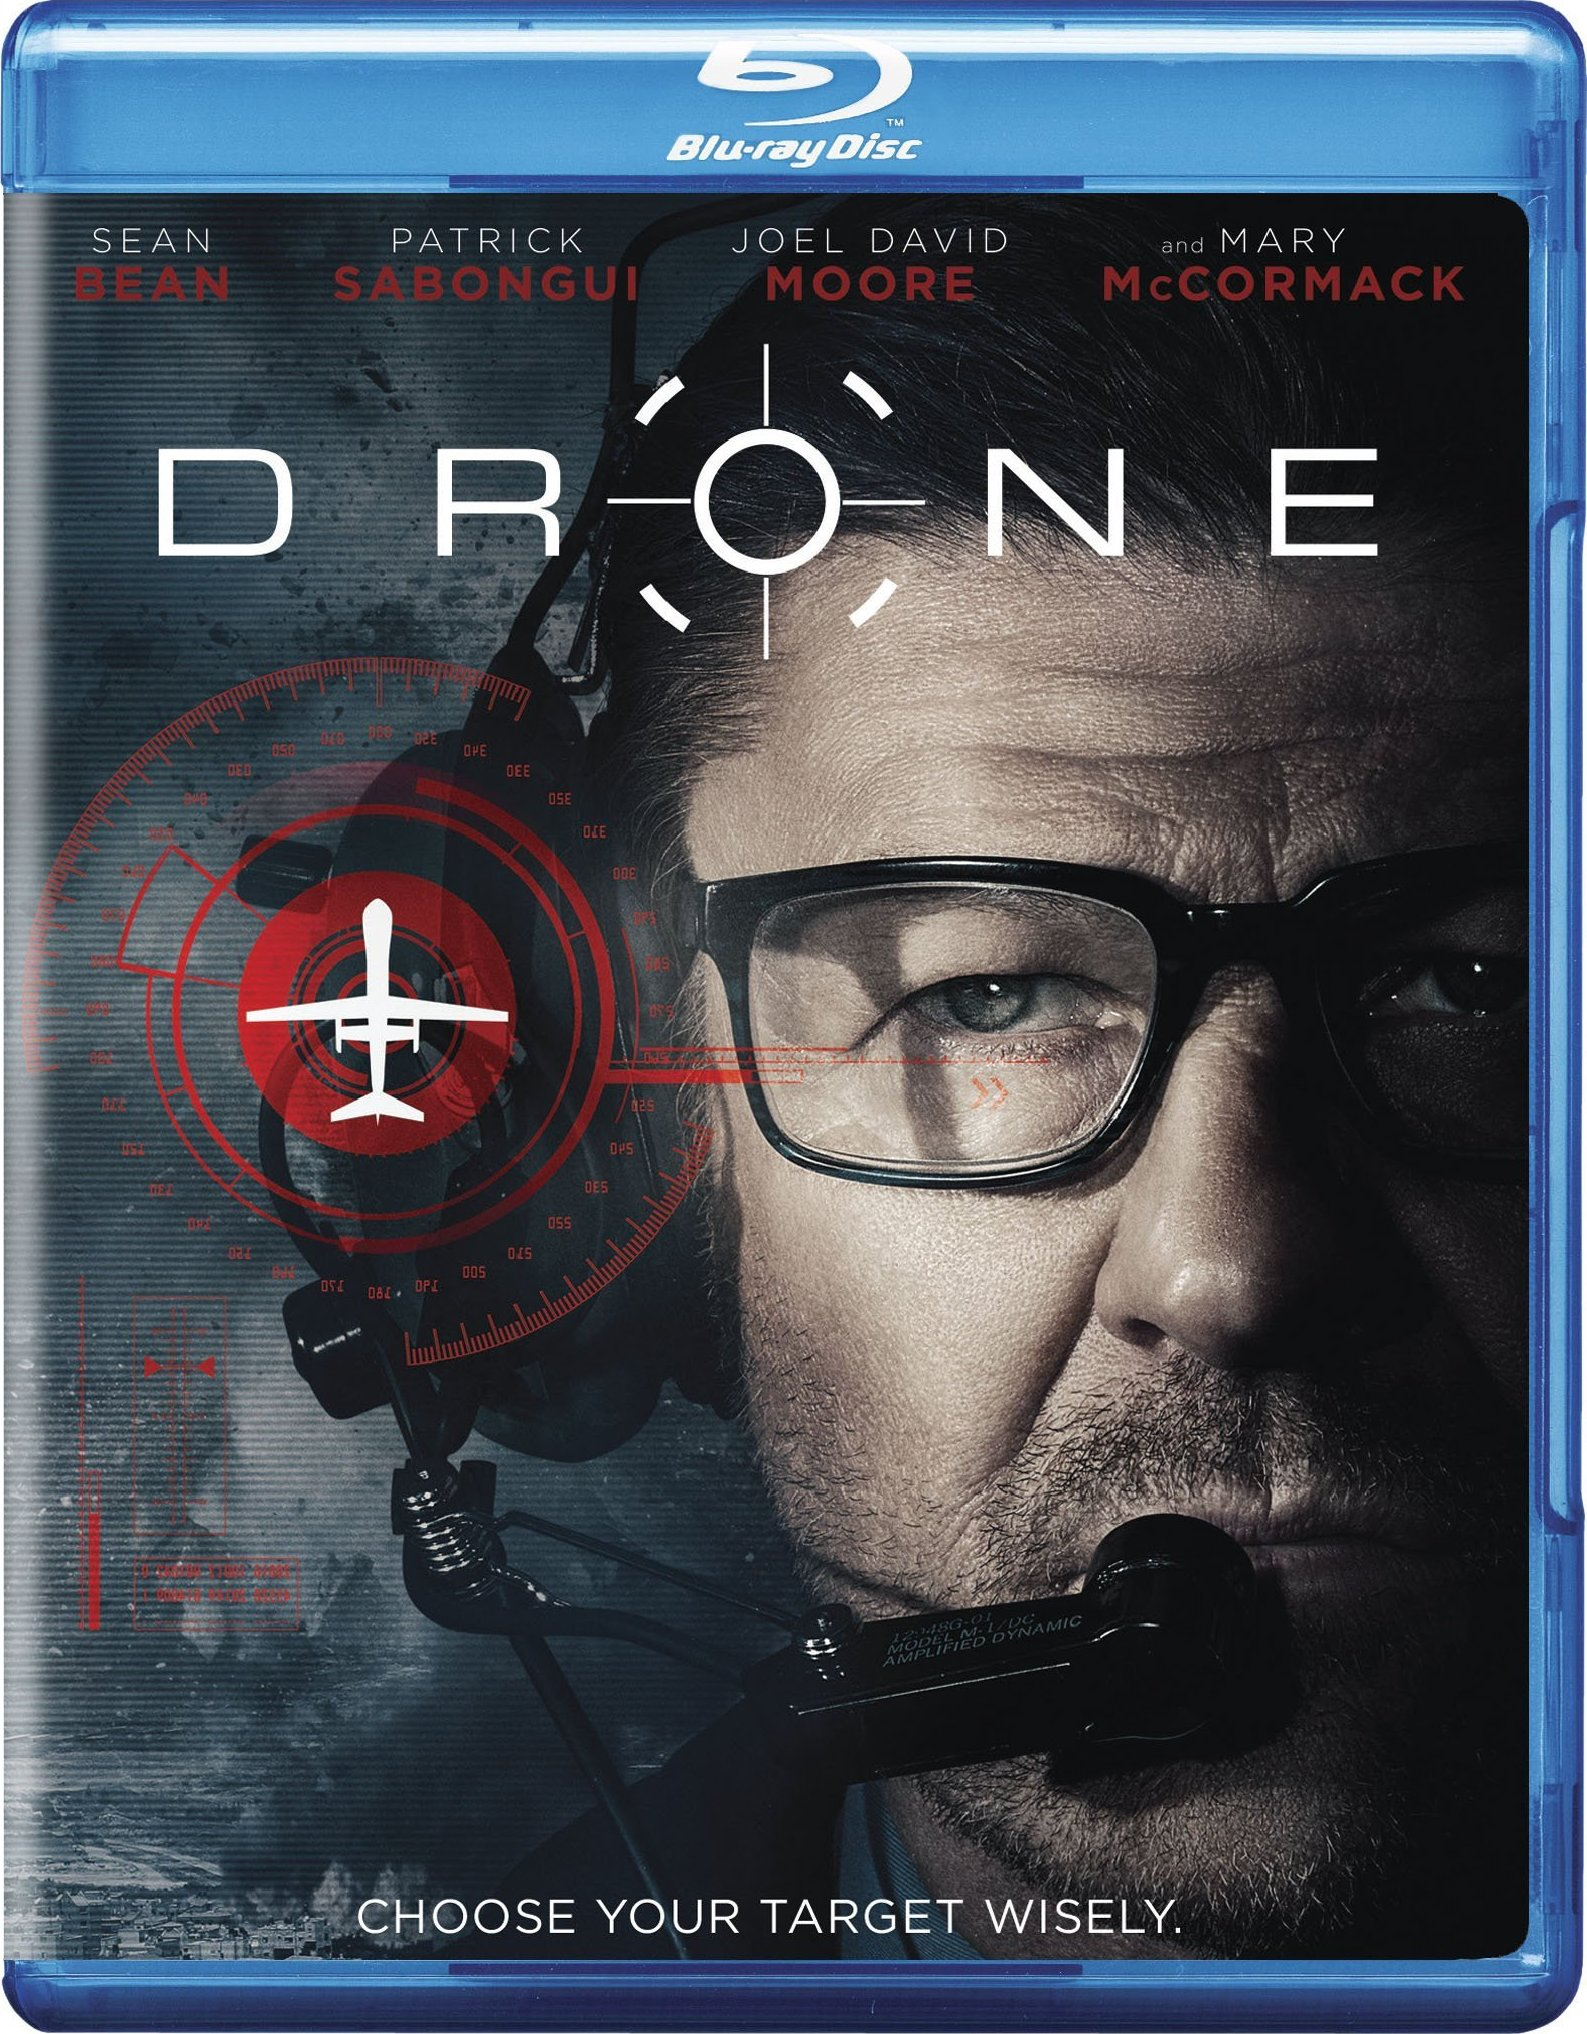 Drone (2017) poster image